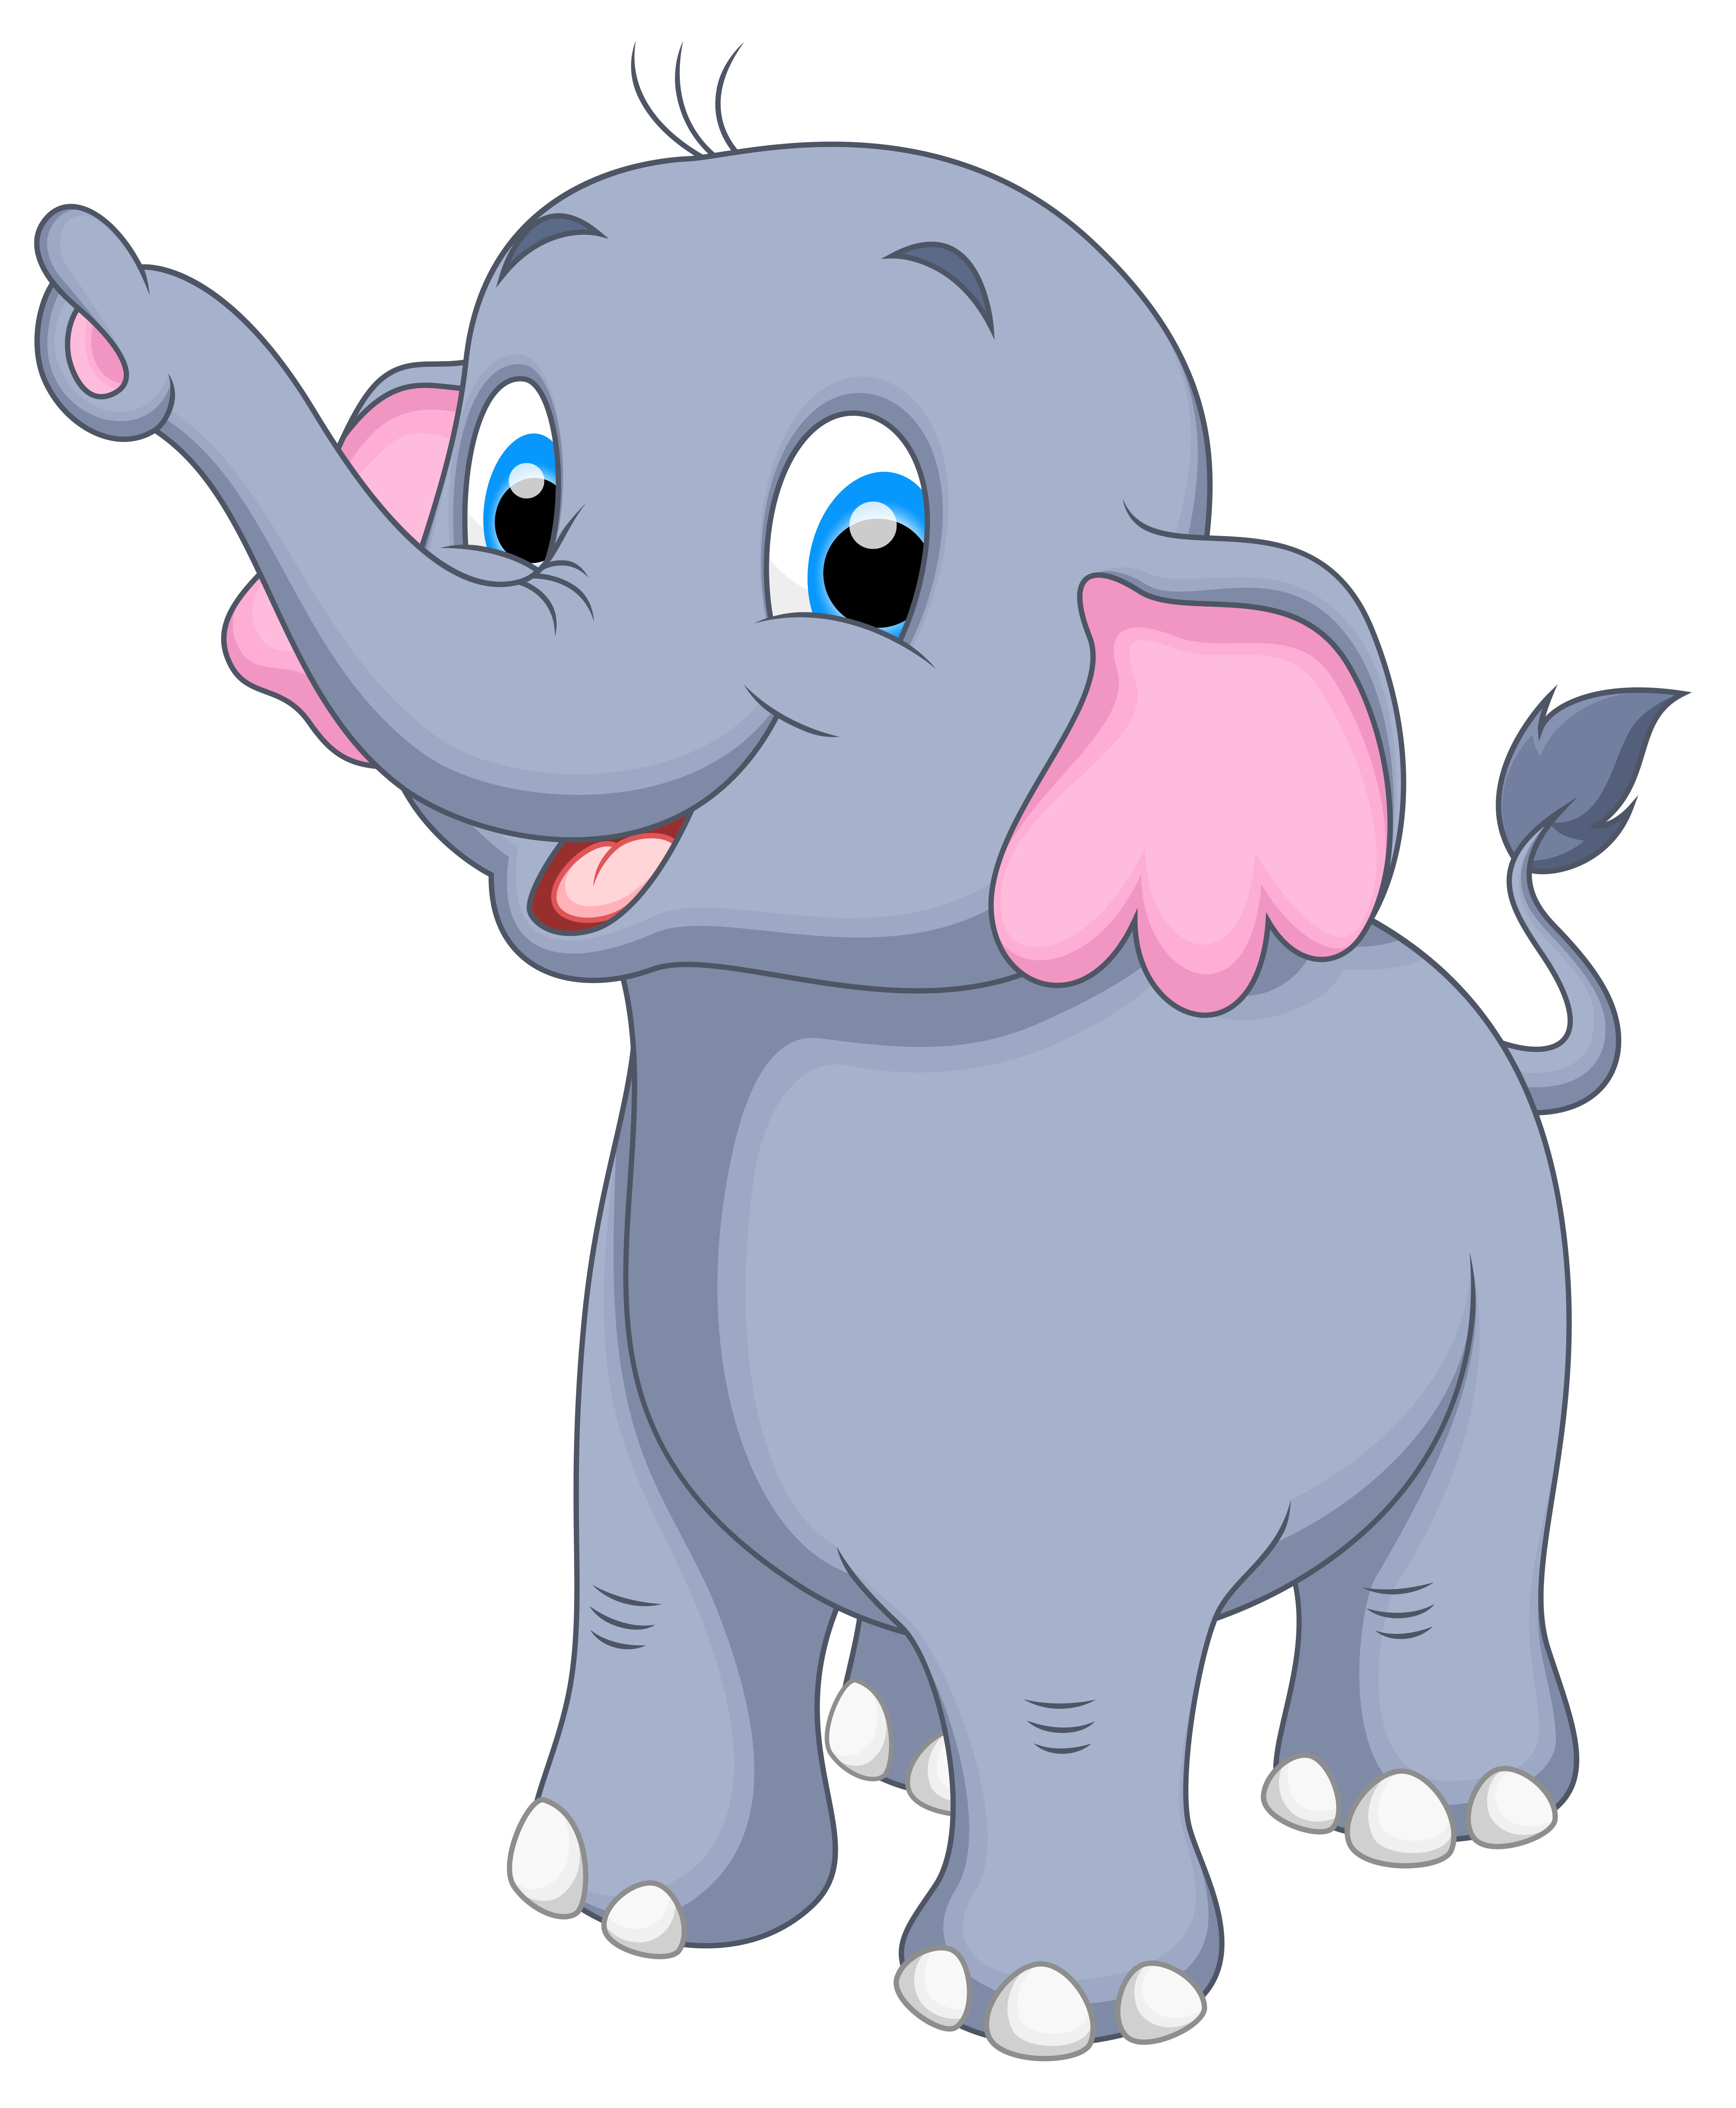 Little Elephant Png Clipart Image Gallery Yopriceville High Quality Images And Transparent Pn Cute Elephant Cartoon Baby Elephant Cartoon Cartoon Elephant Please remember to share it with your. pinterest